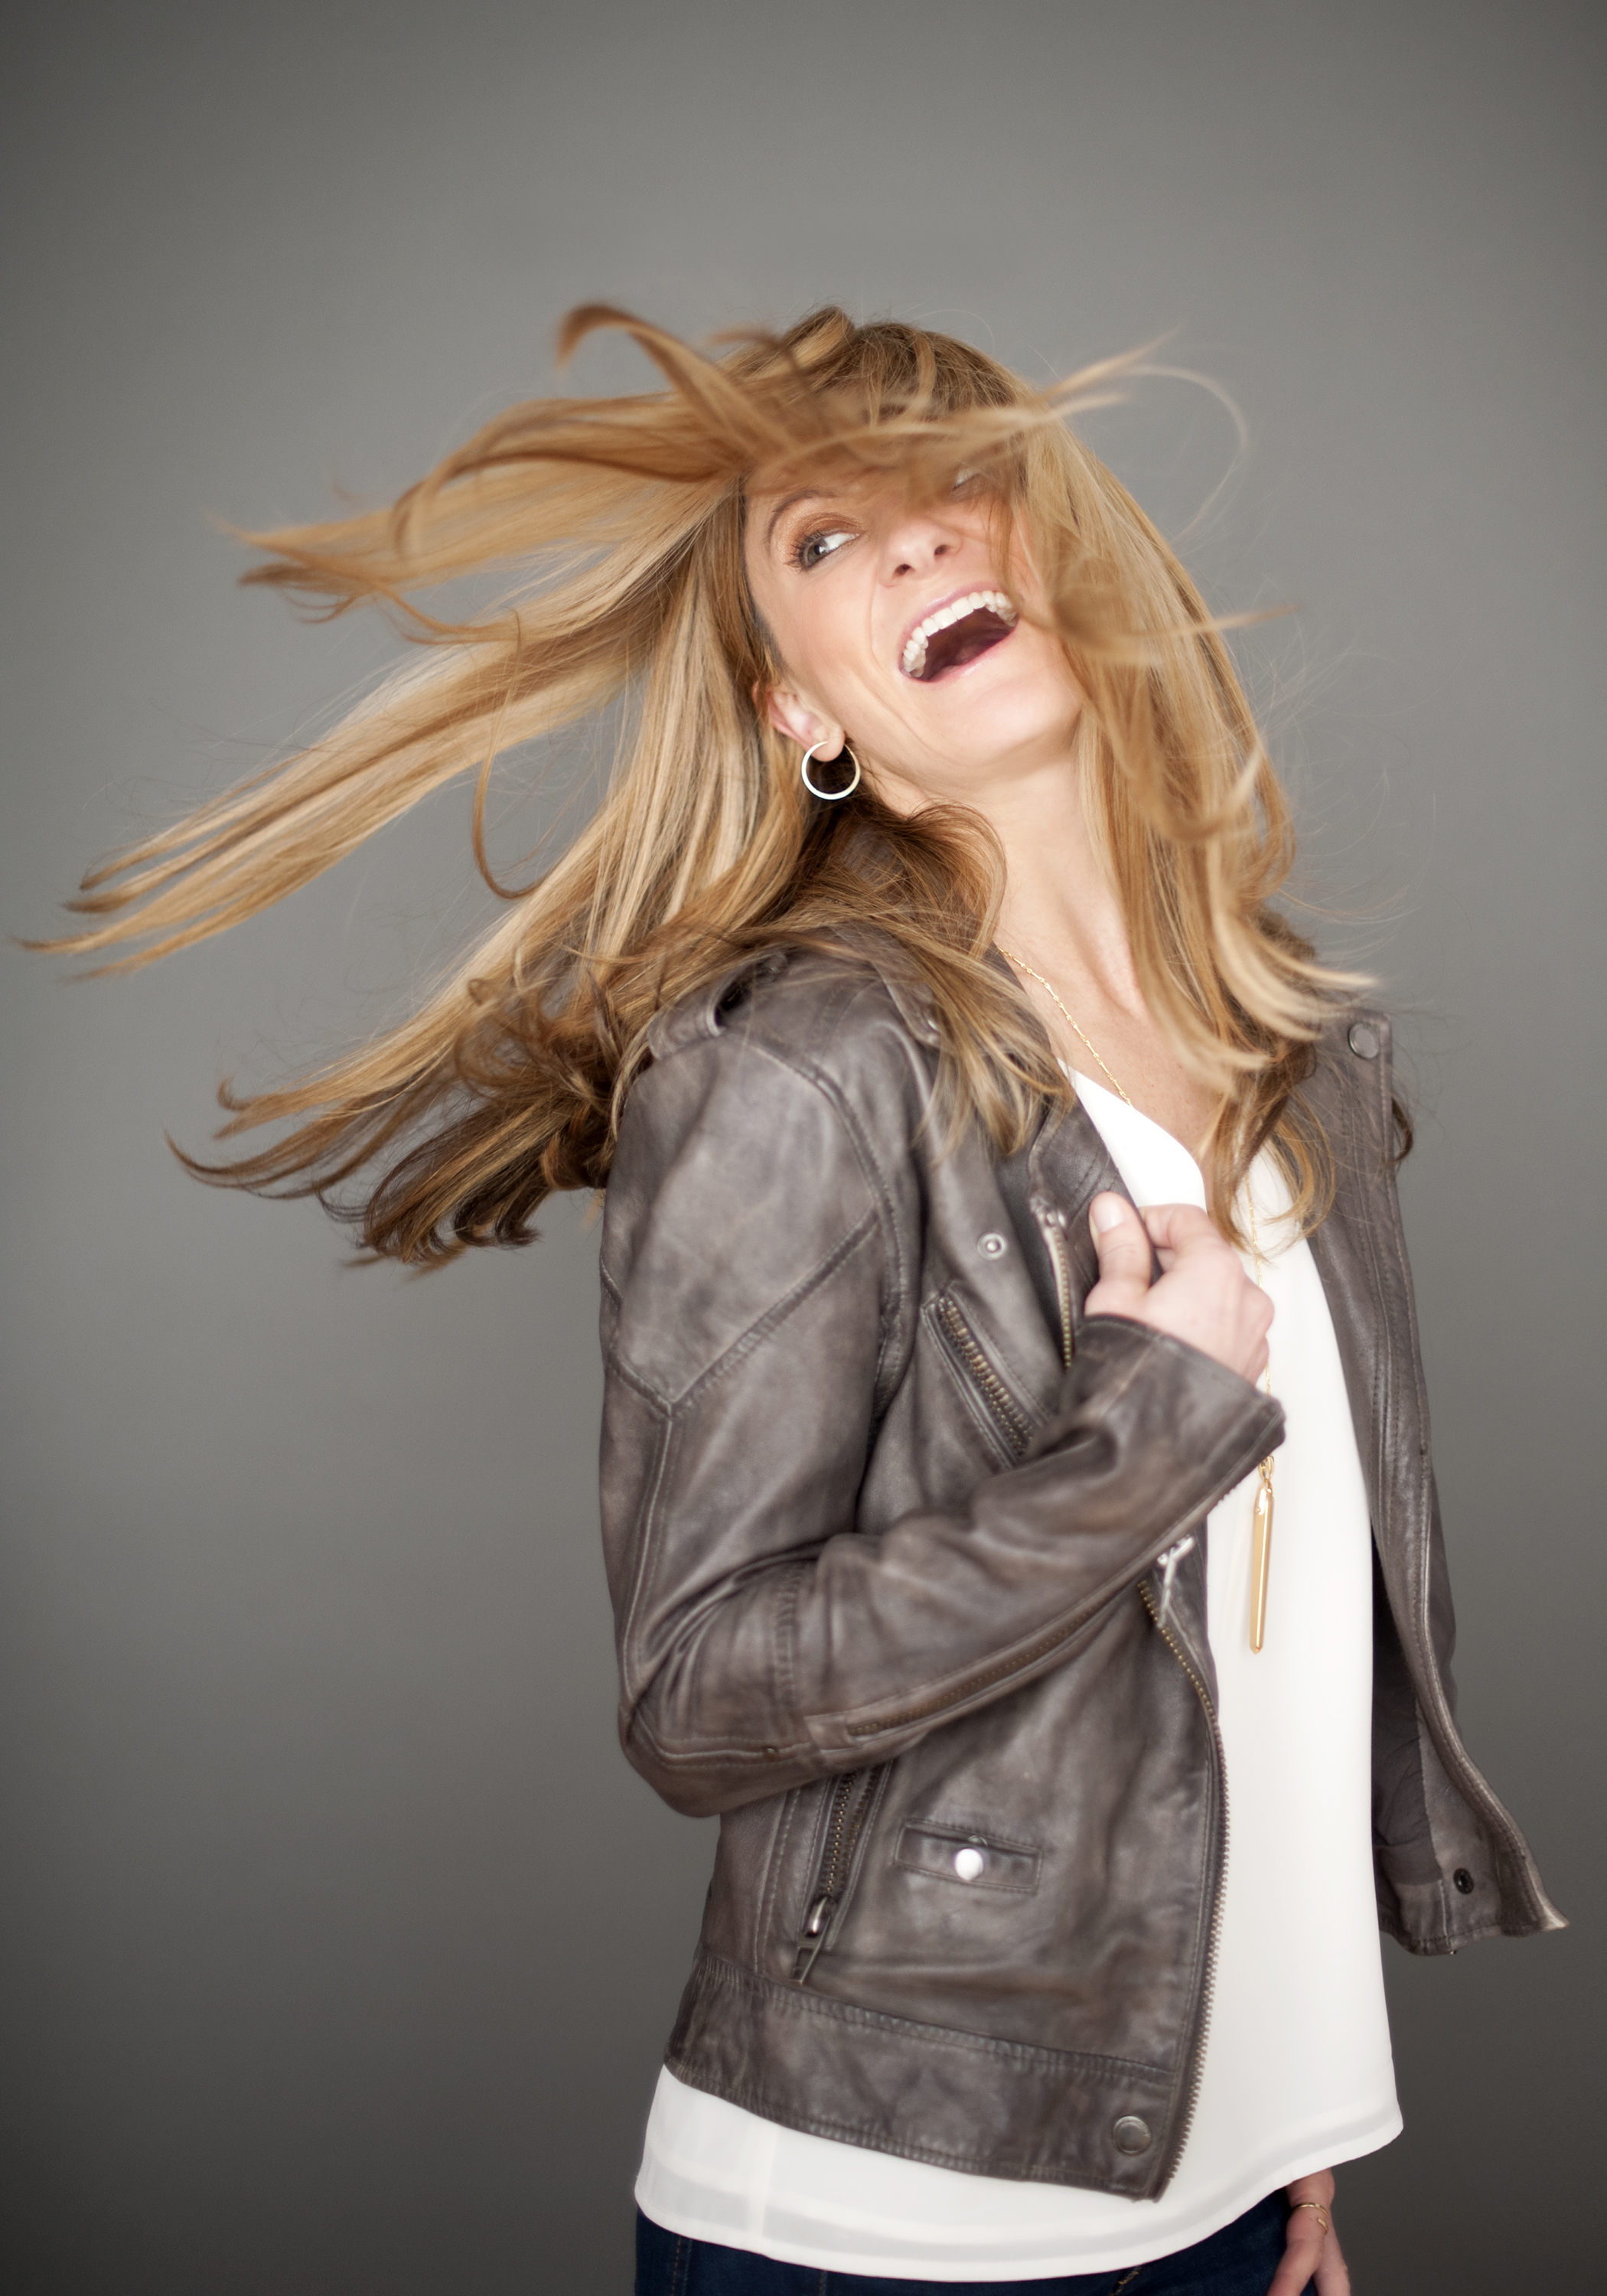 hair flip movement in brown leather jacket